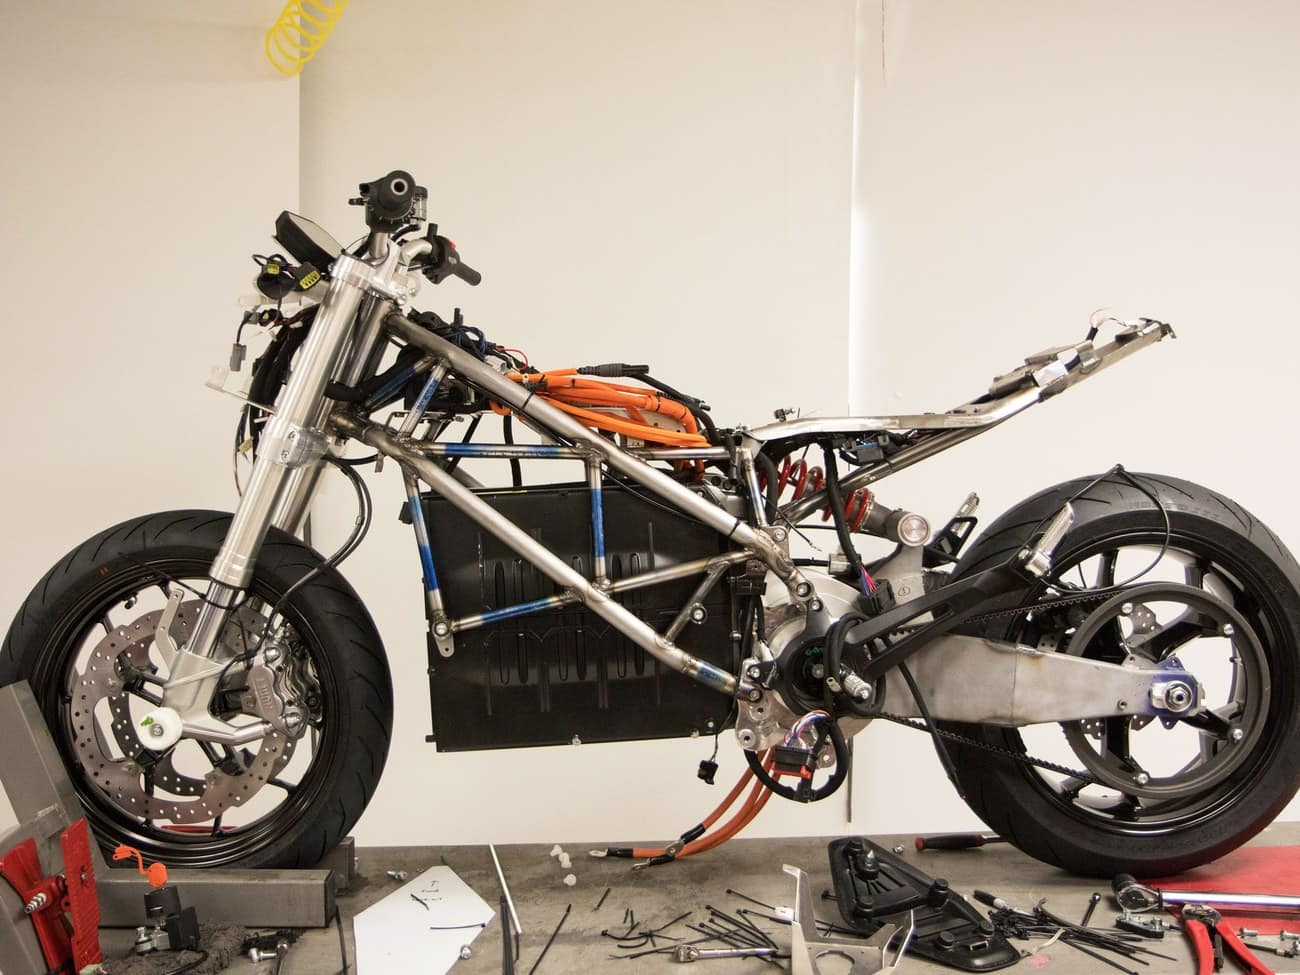 The Trellis exposed frame of the Zero SR/F motorcycle